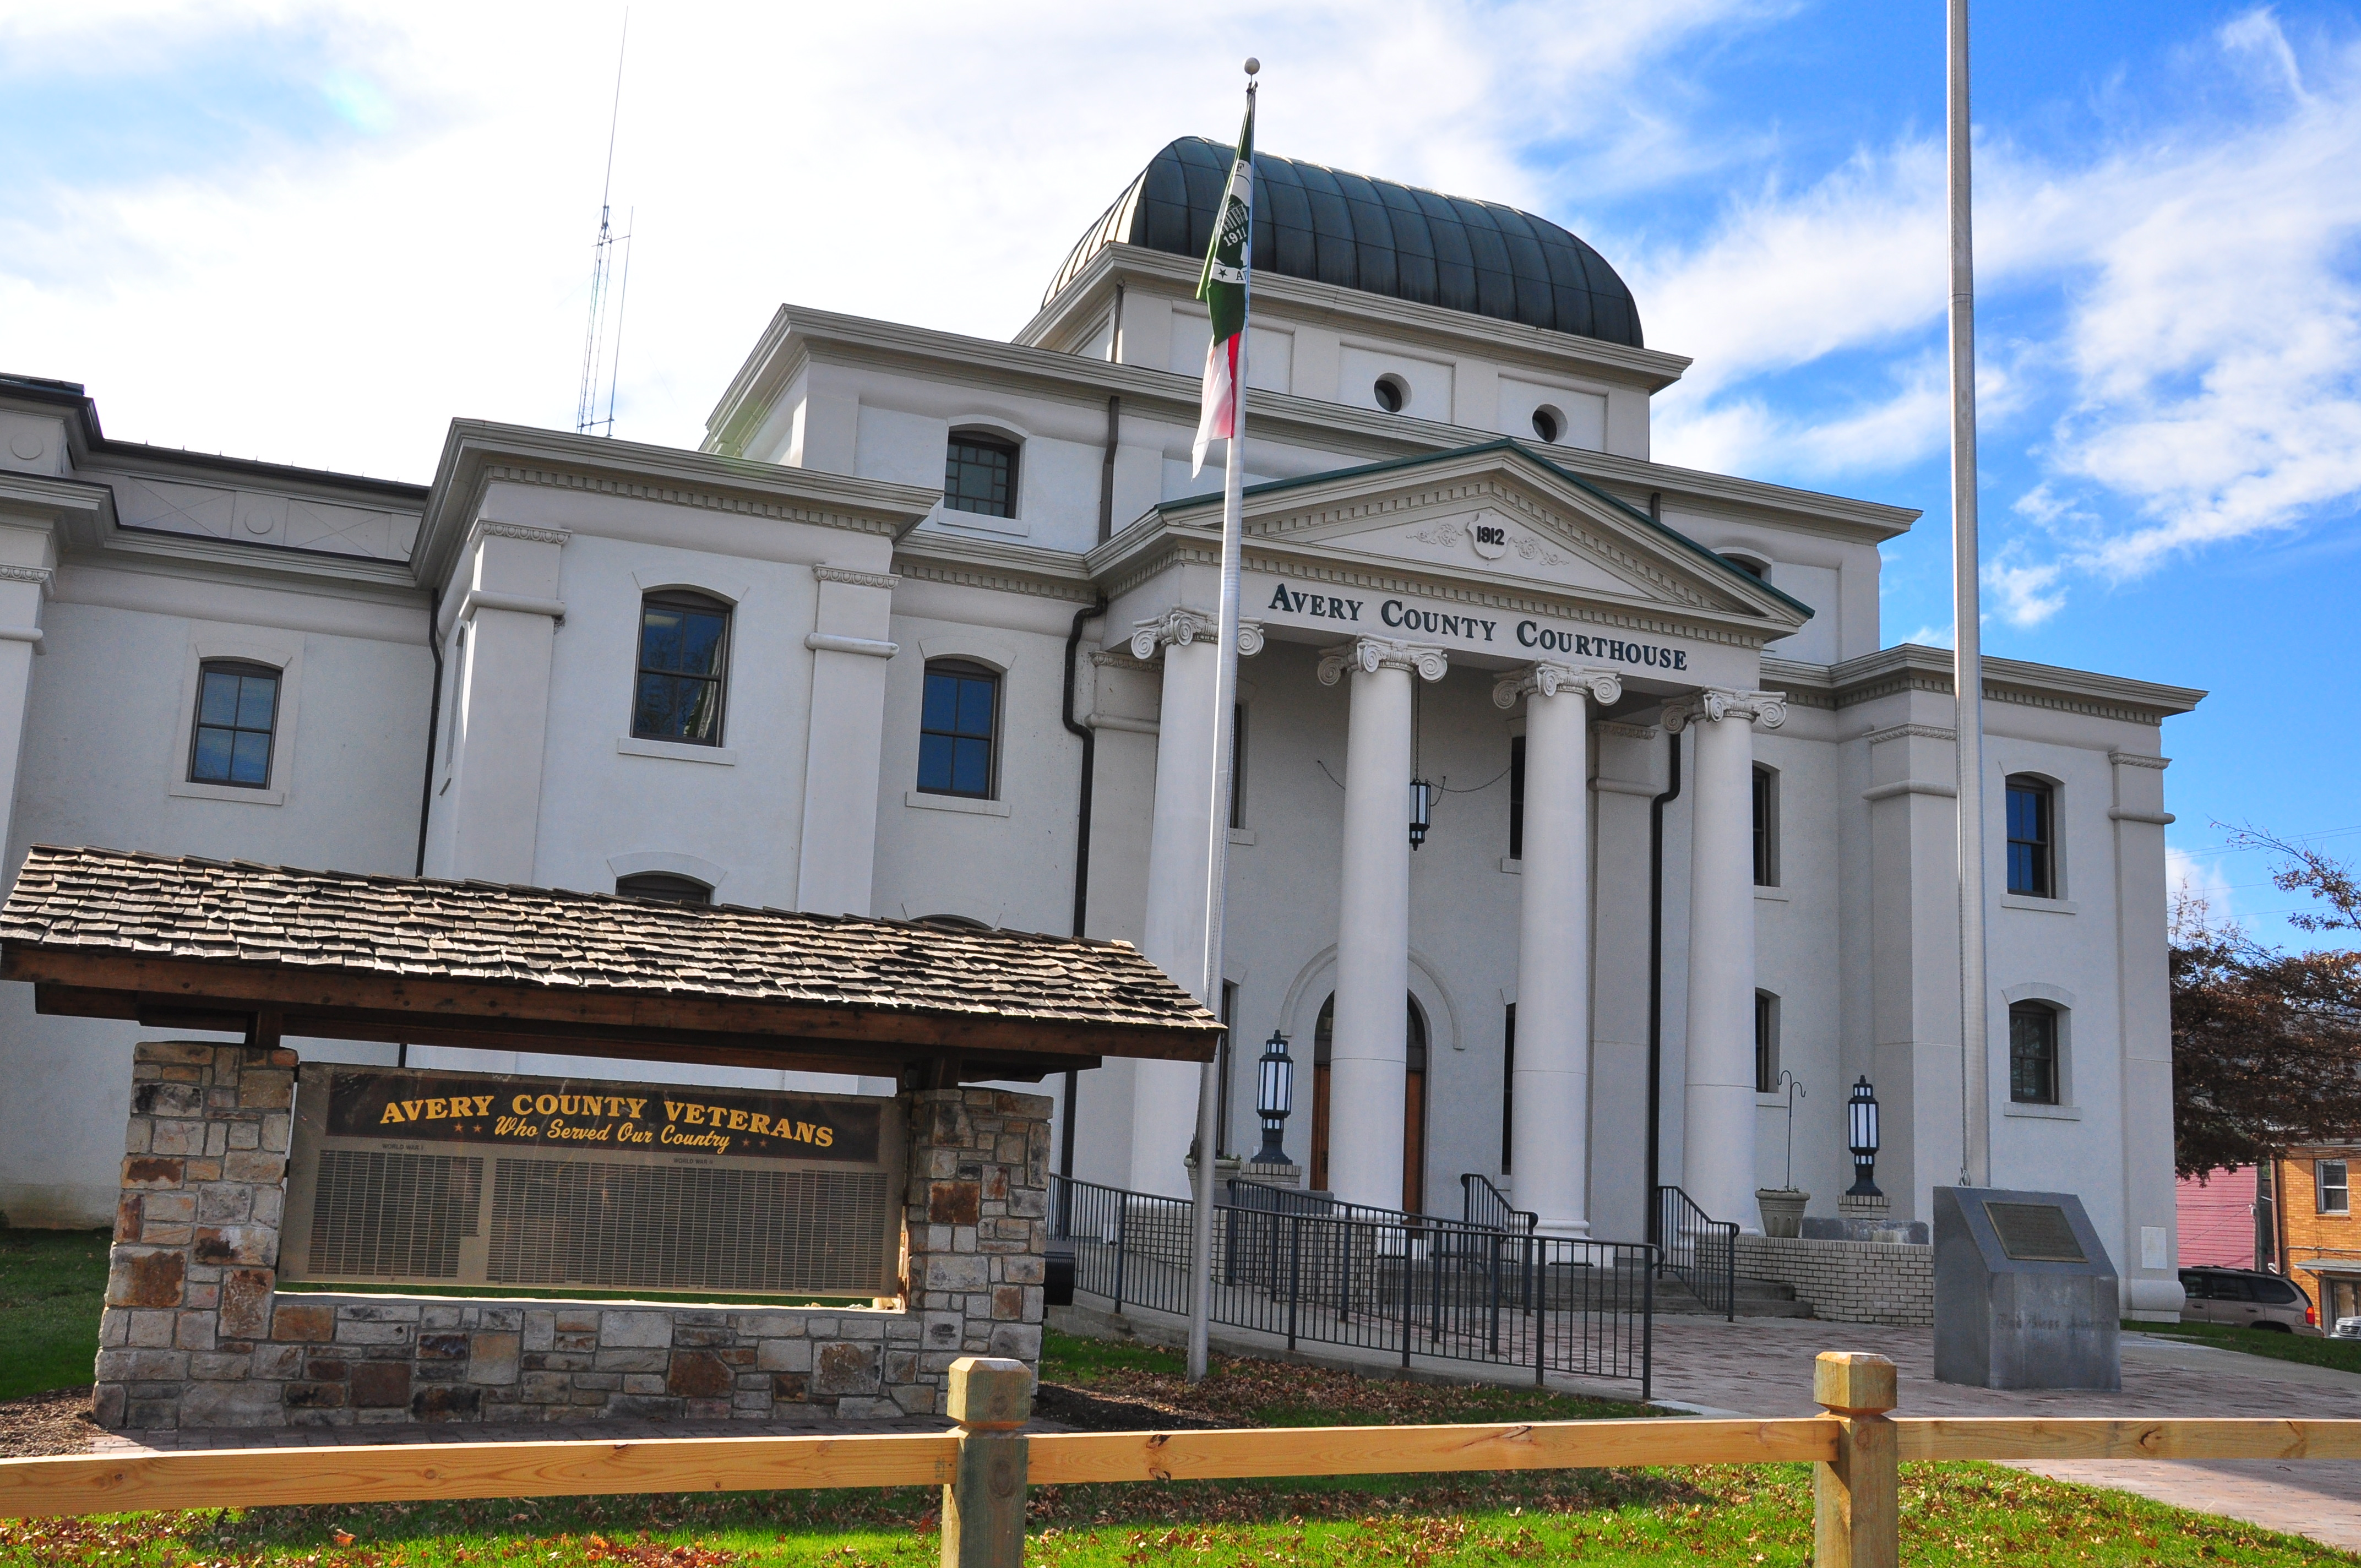 Avery County Courthouse - Wikipedia